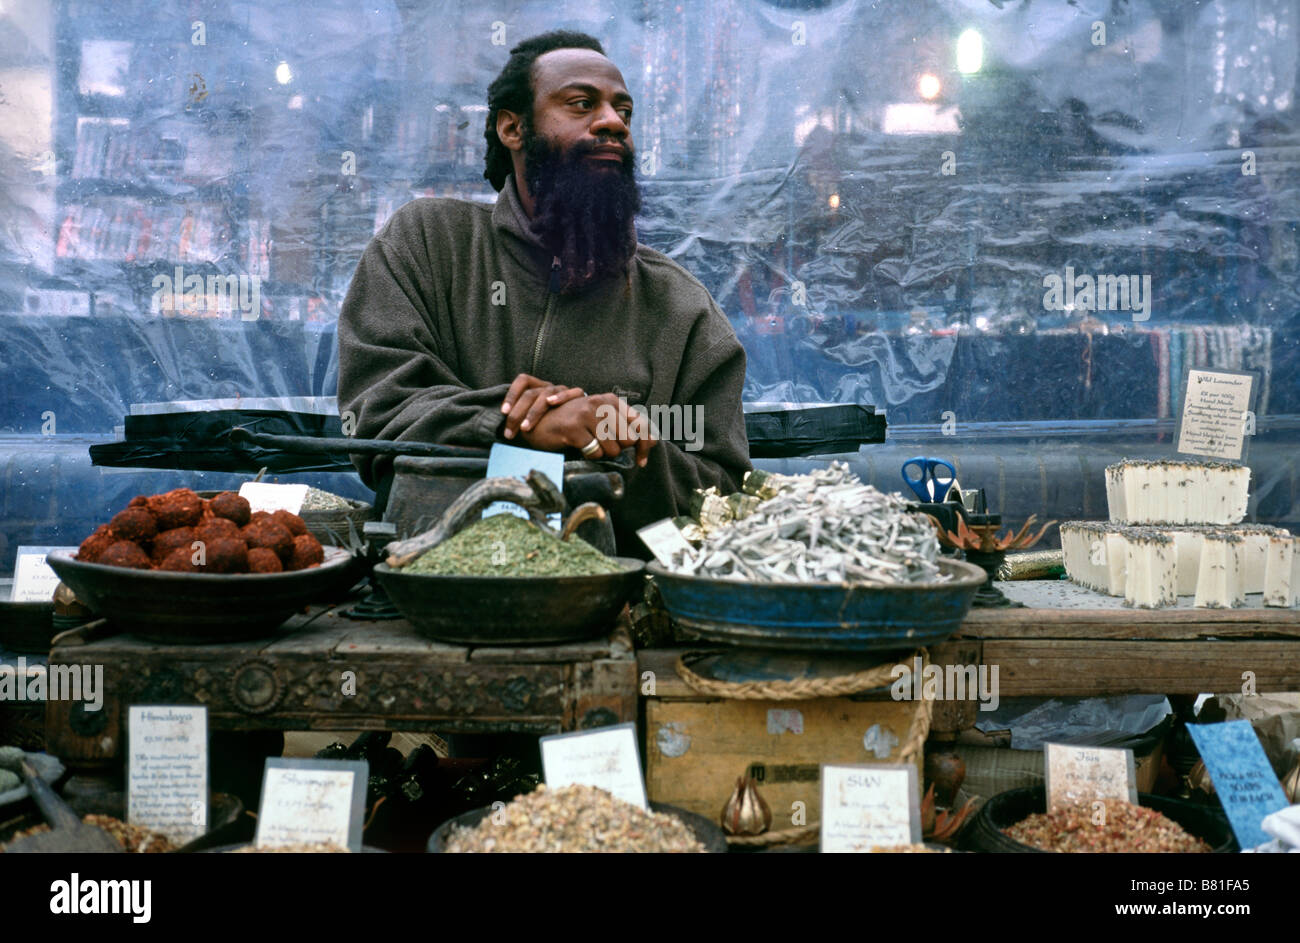 Oct 4, 2003 - Man selling aroma therapy soap at Camden Lock market in the British capital of London. - Stock Image